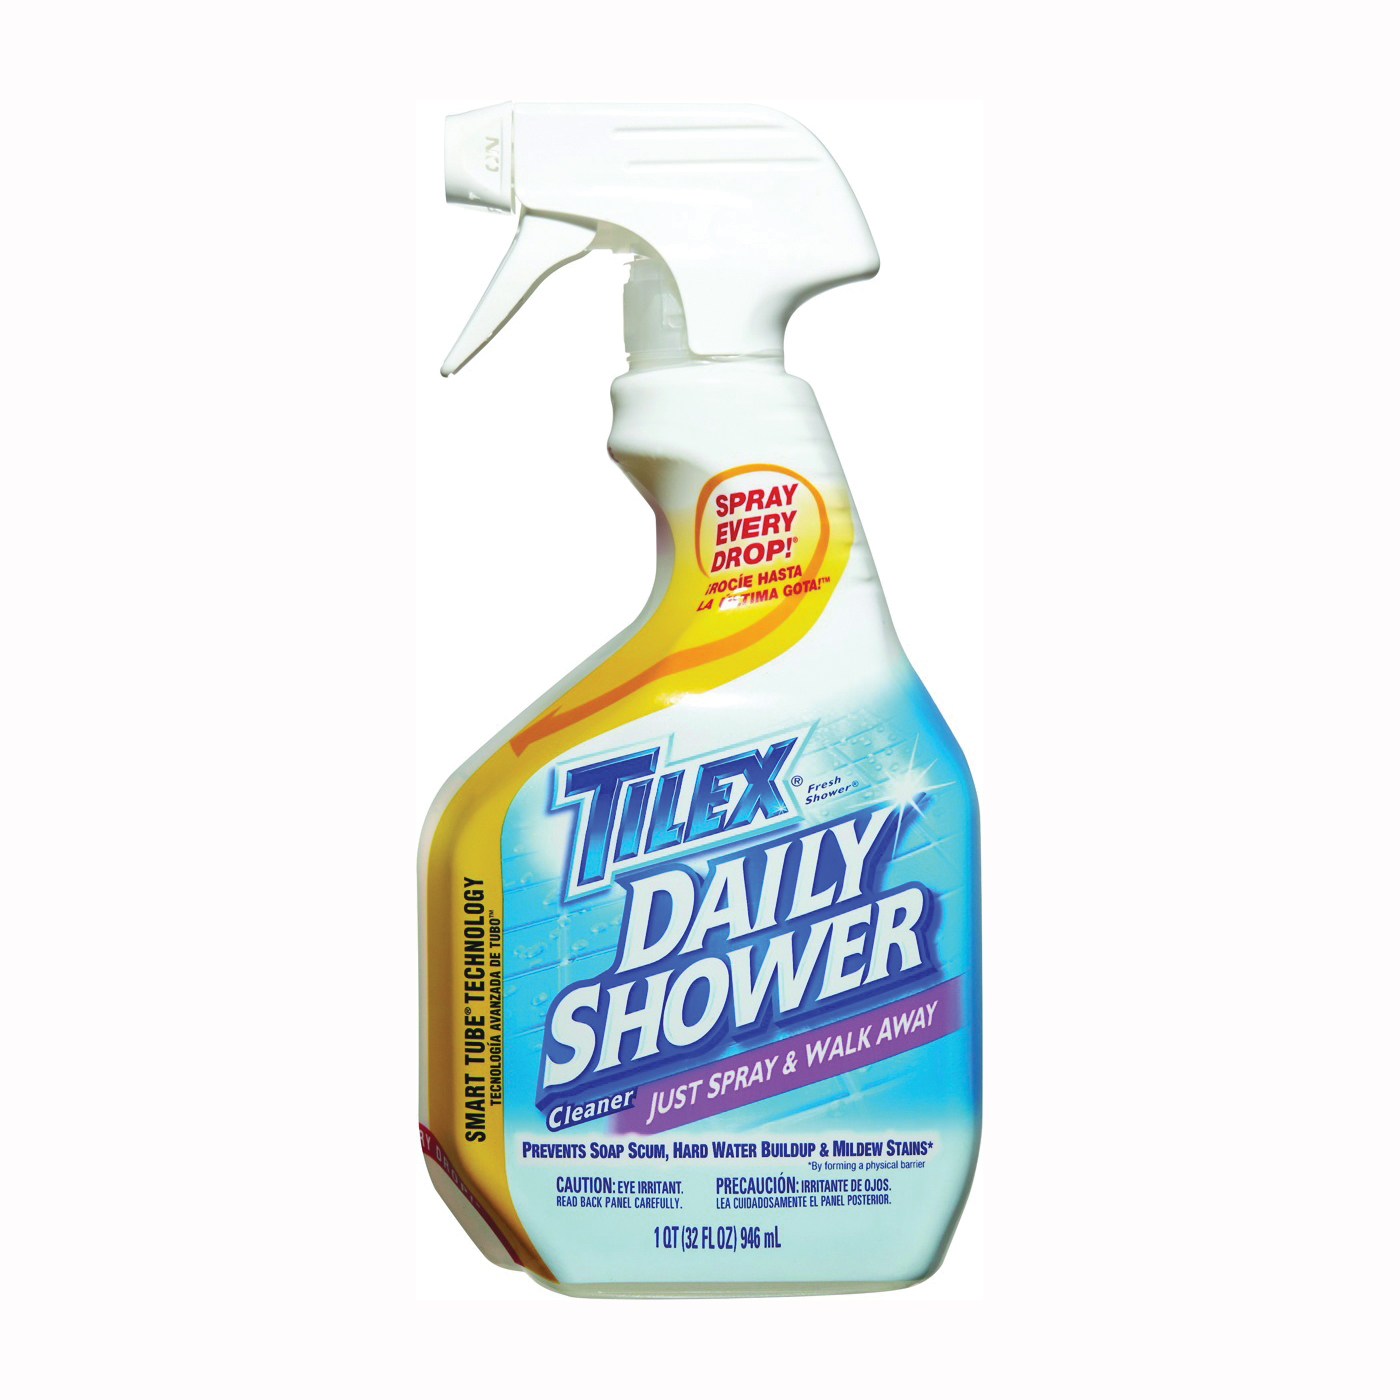 Picture of Clorox 01299 Shower Cleaner, 32 oz Package, Bottle, Liquid, Citrus, Floral, Fruity, Clear Yellow